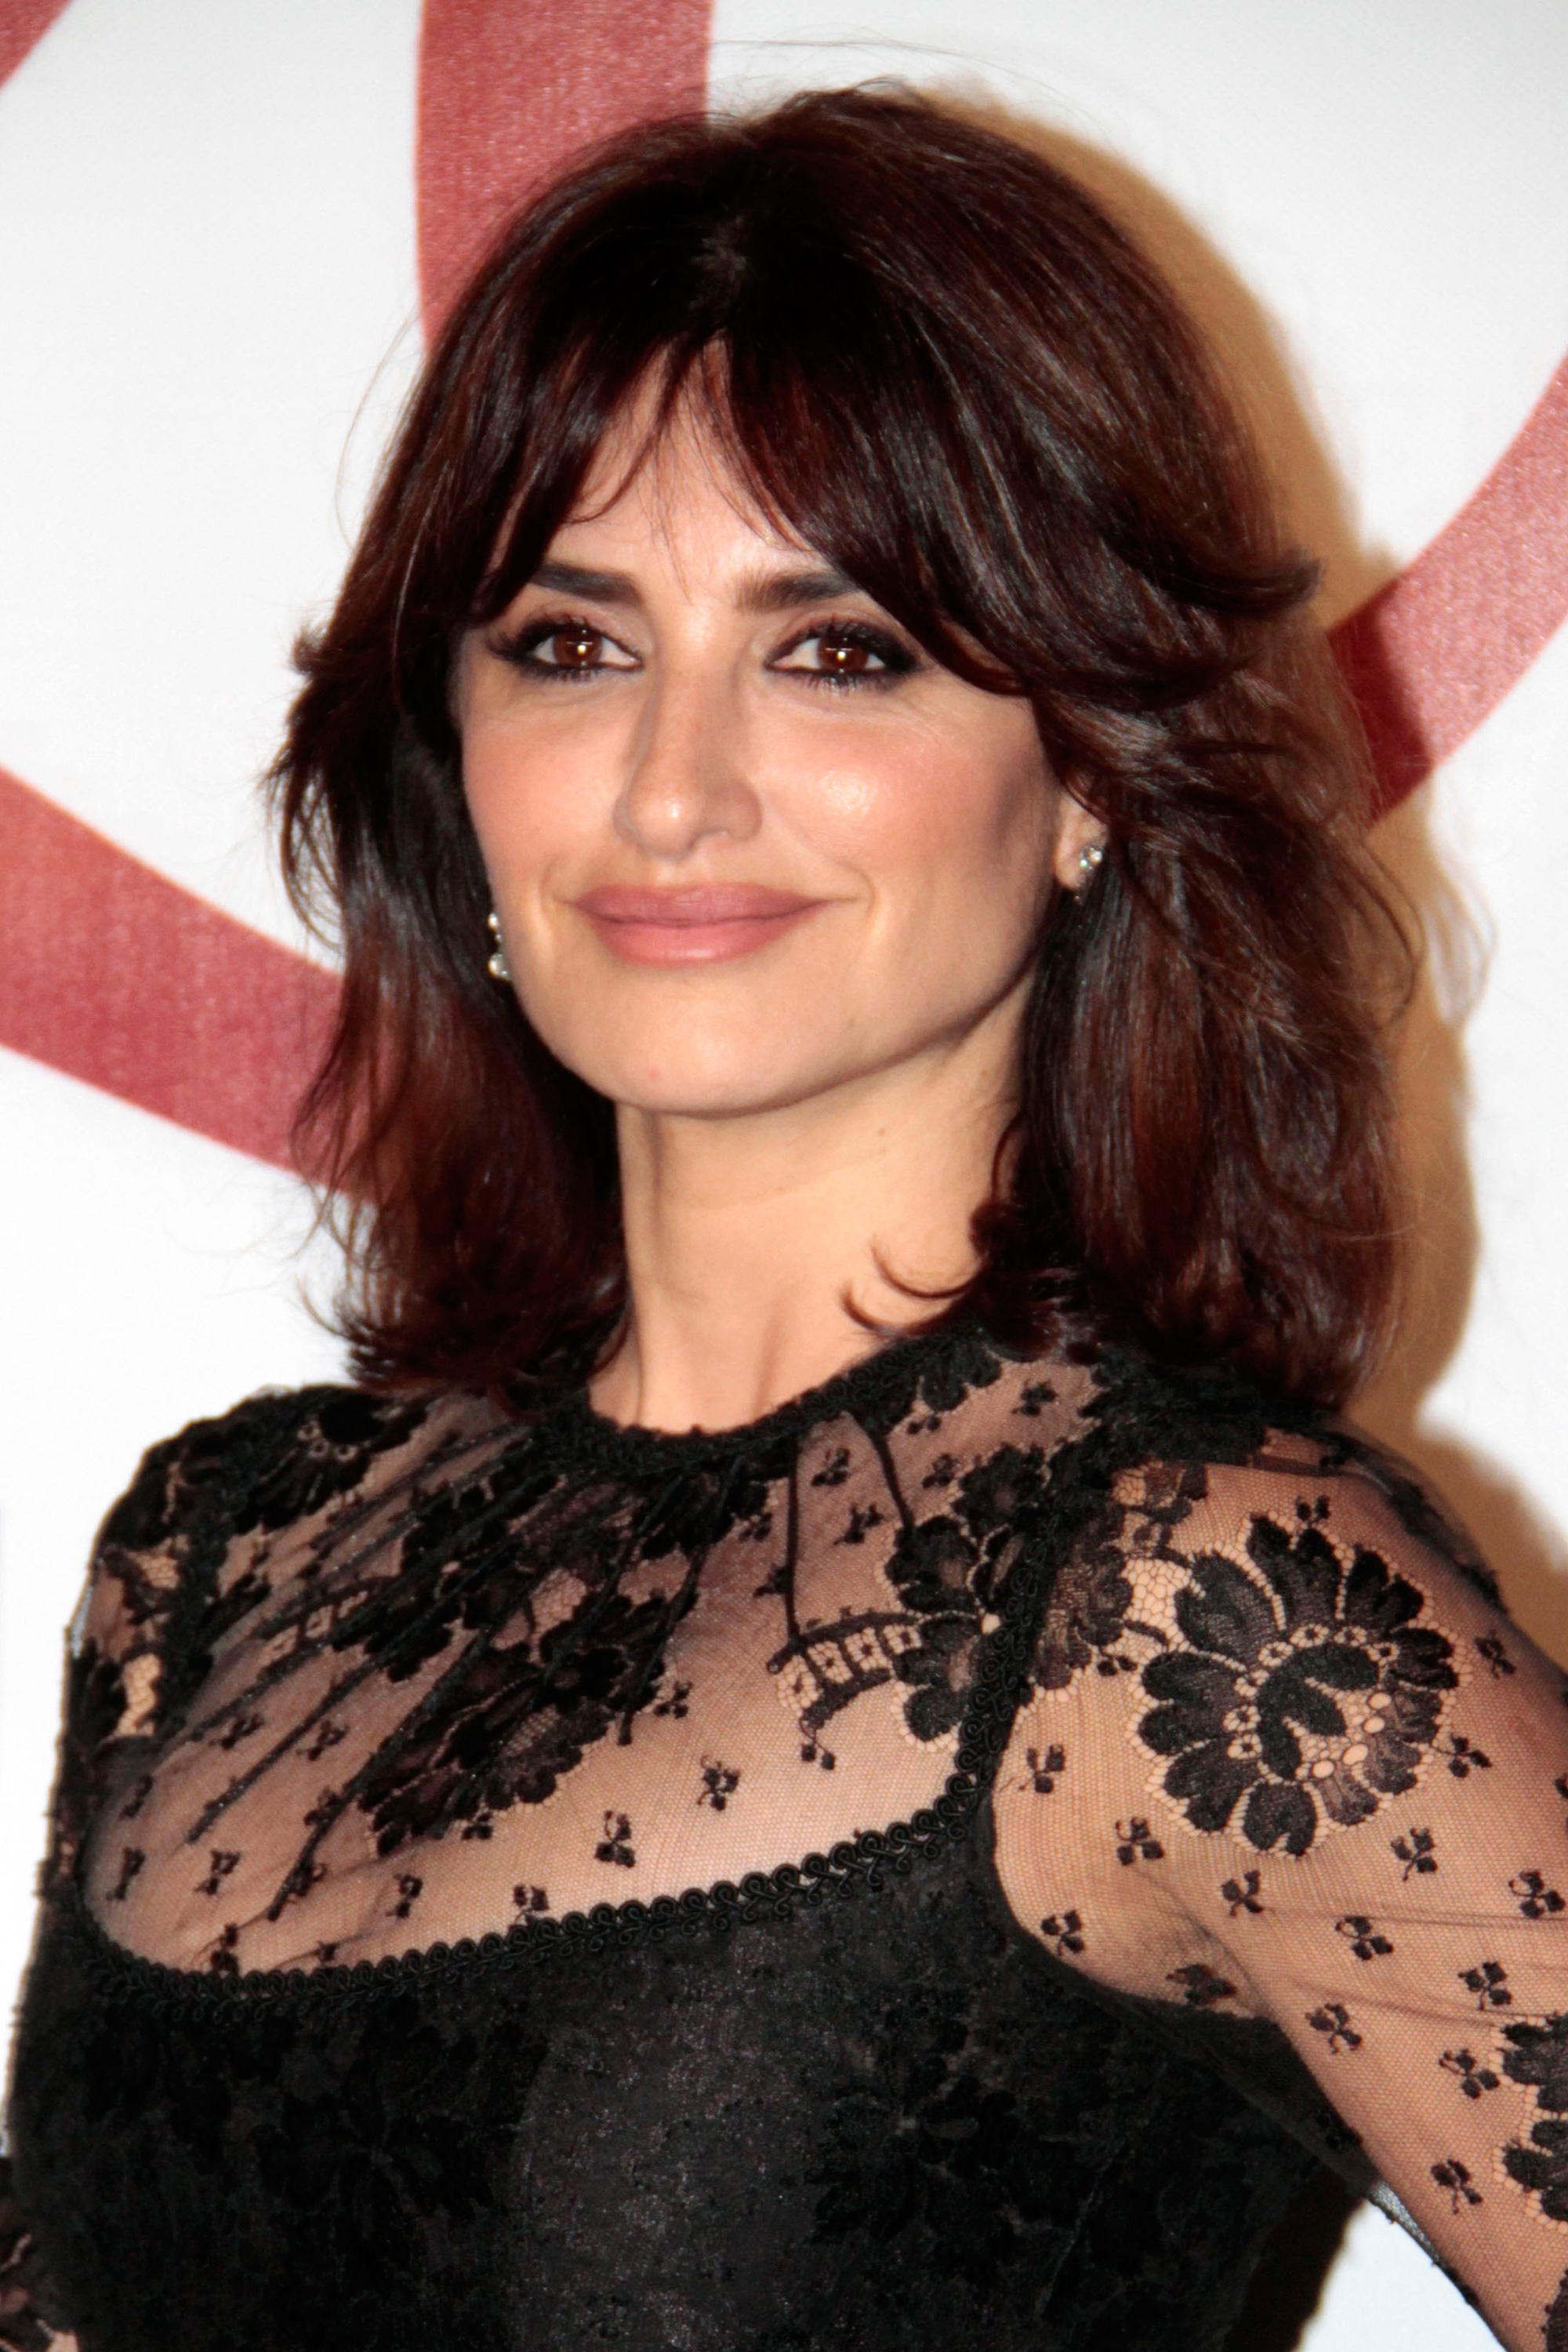 pictures of haircuts for medium length hair 55 gorgeous medium length hairstyle ideas best mid 5791 | penelope cruz